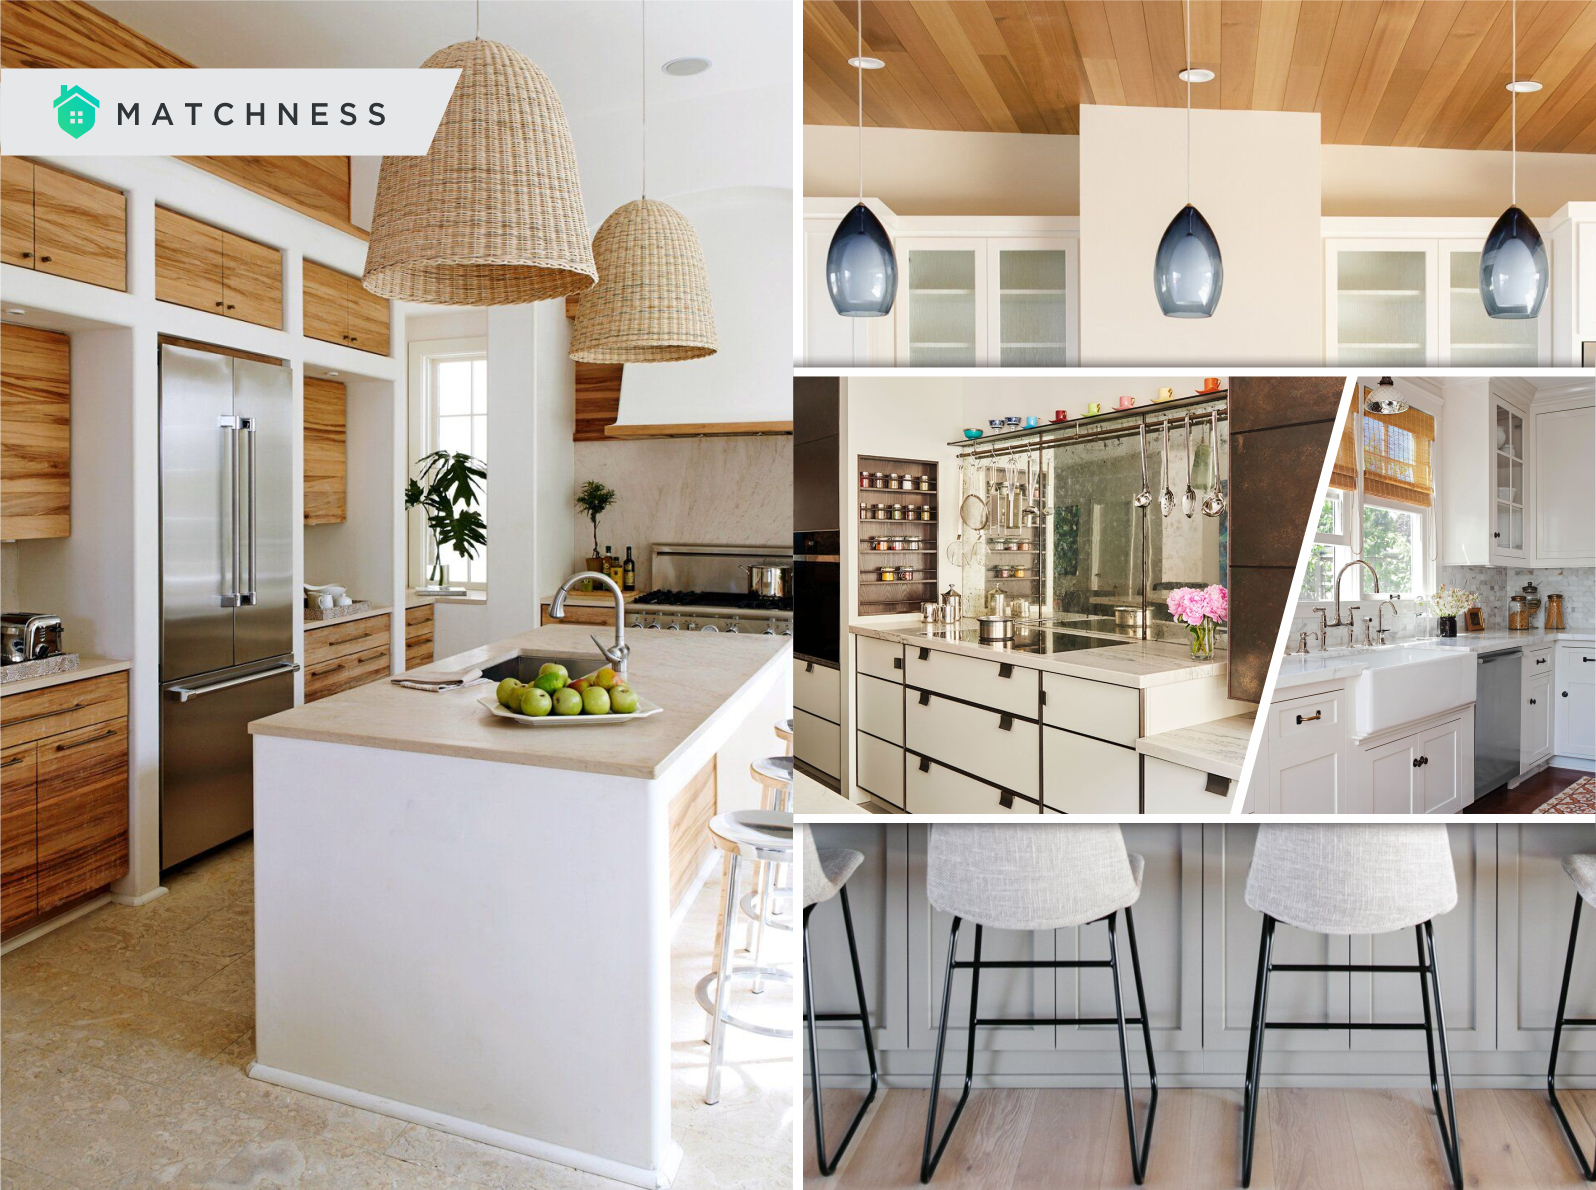 Innovative Kitchen Design Ideas That Are All Bang On Trend 2021 Matchness Com